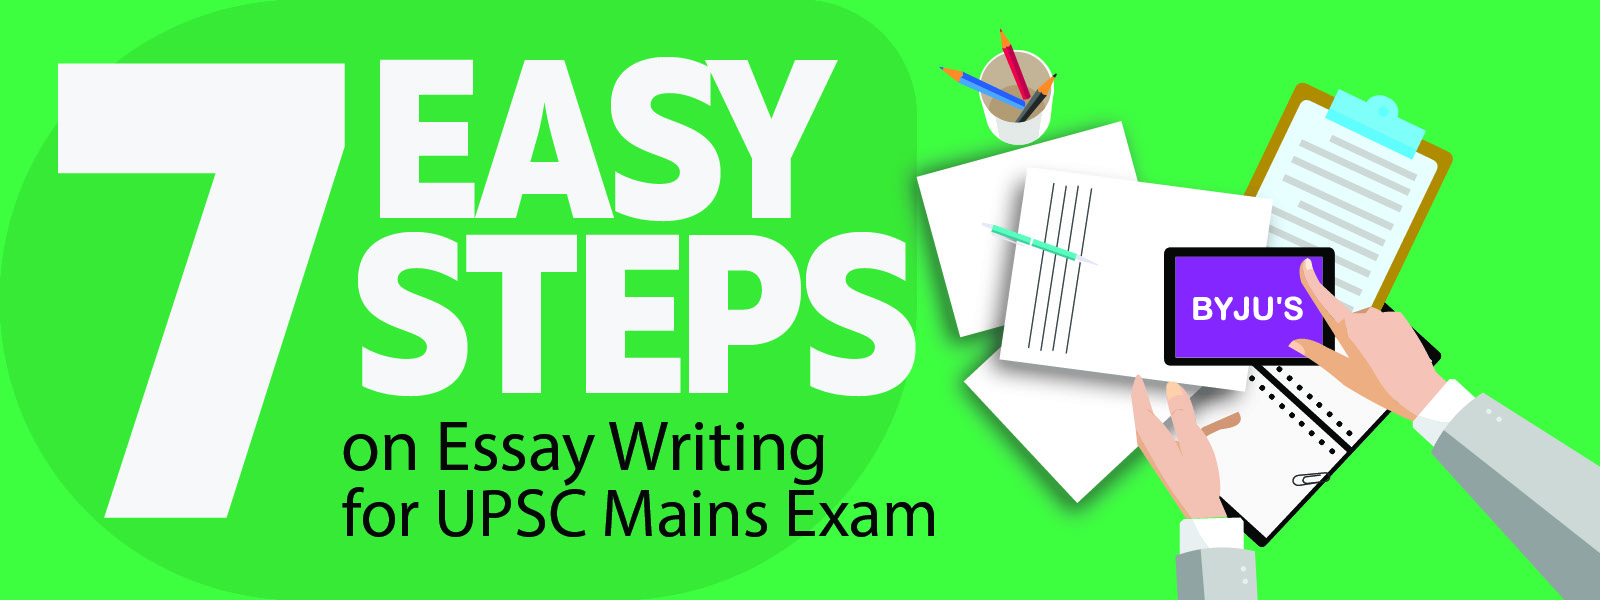 UPSC Mains Program: Answer Writing Practice + Mock Question Papers + Ebooks